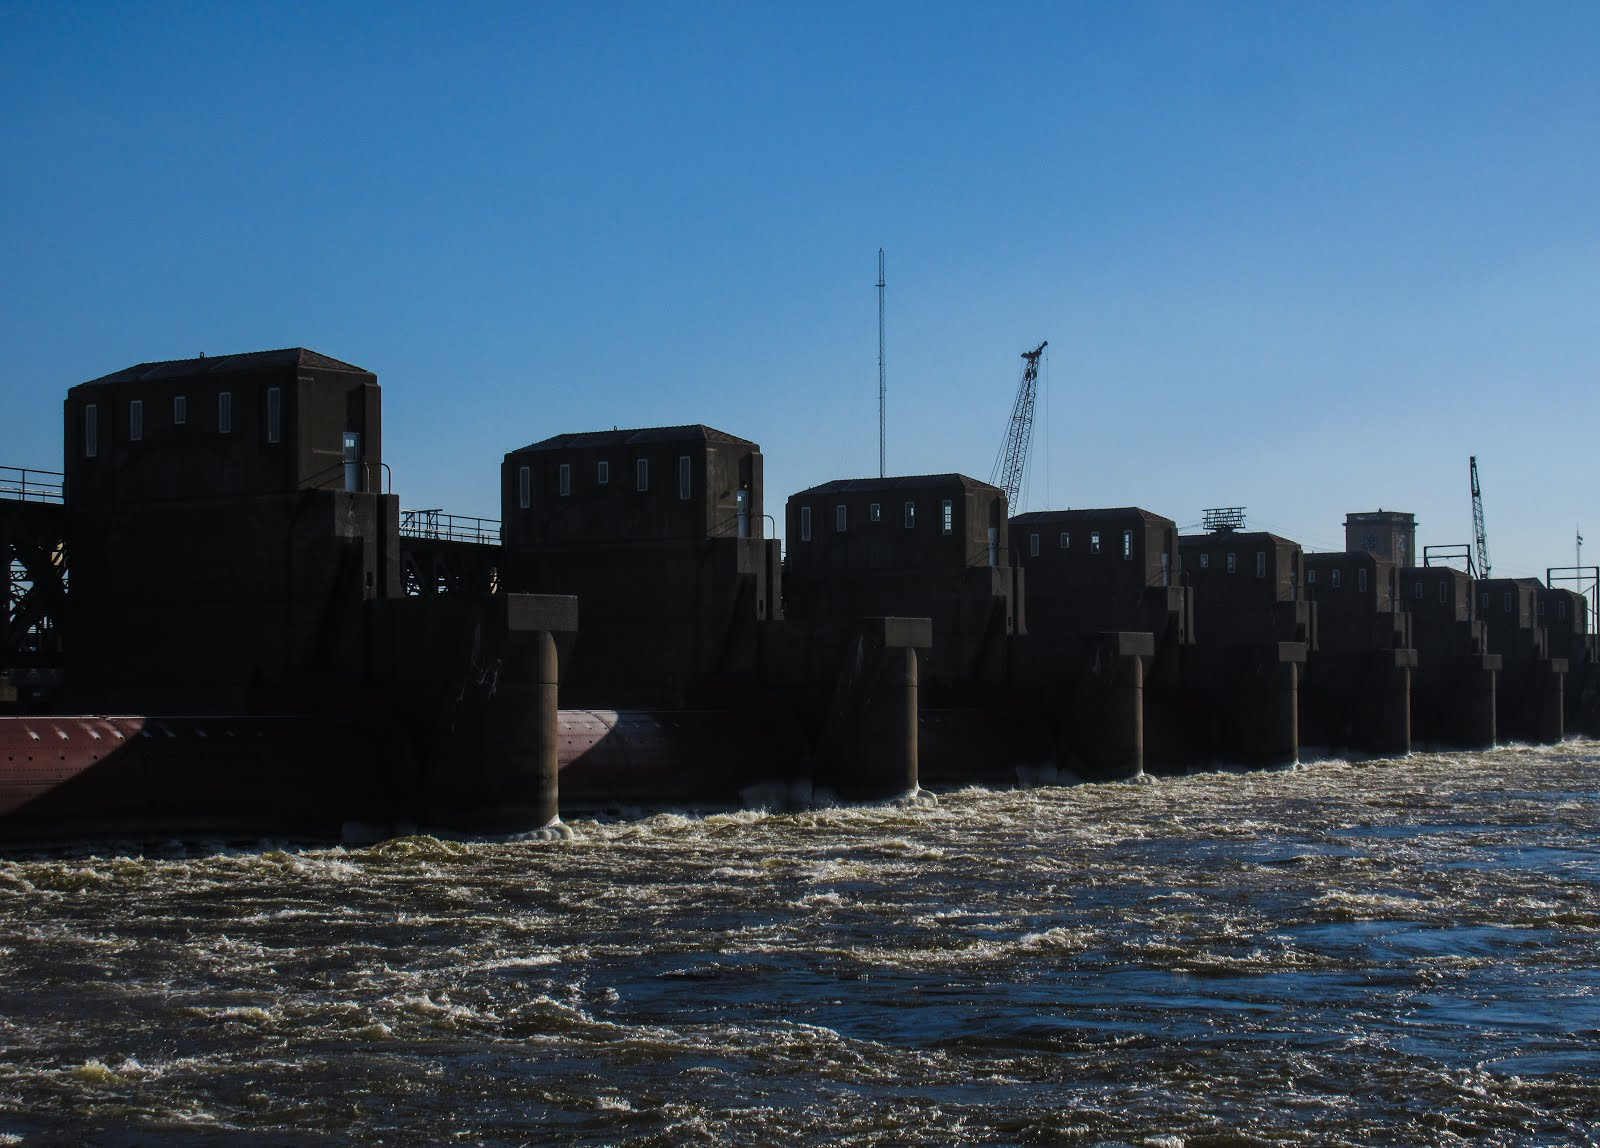 Images from my peripatetic life: Lock and Dam No  15, Davenport, Iowa